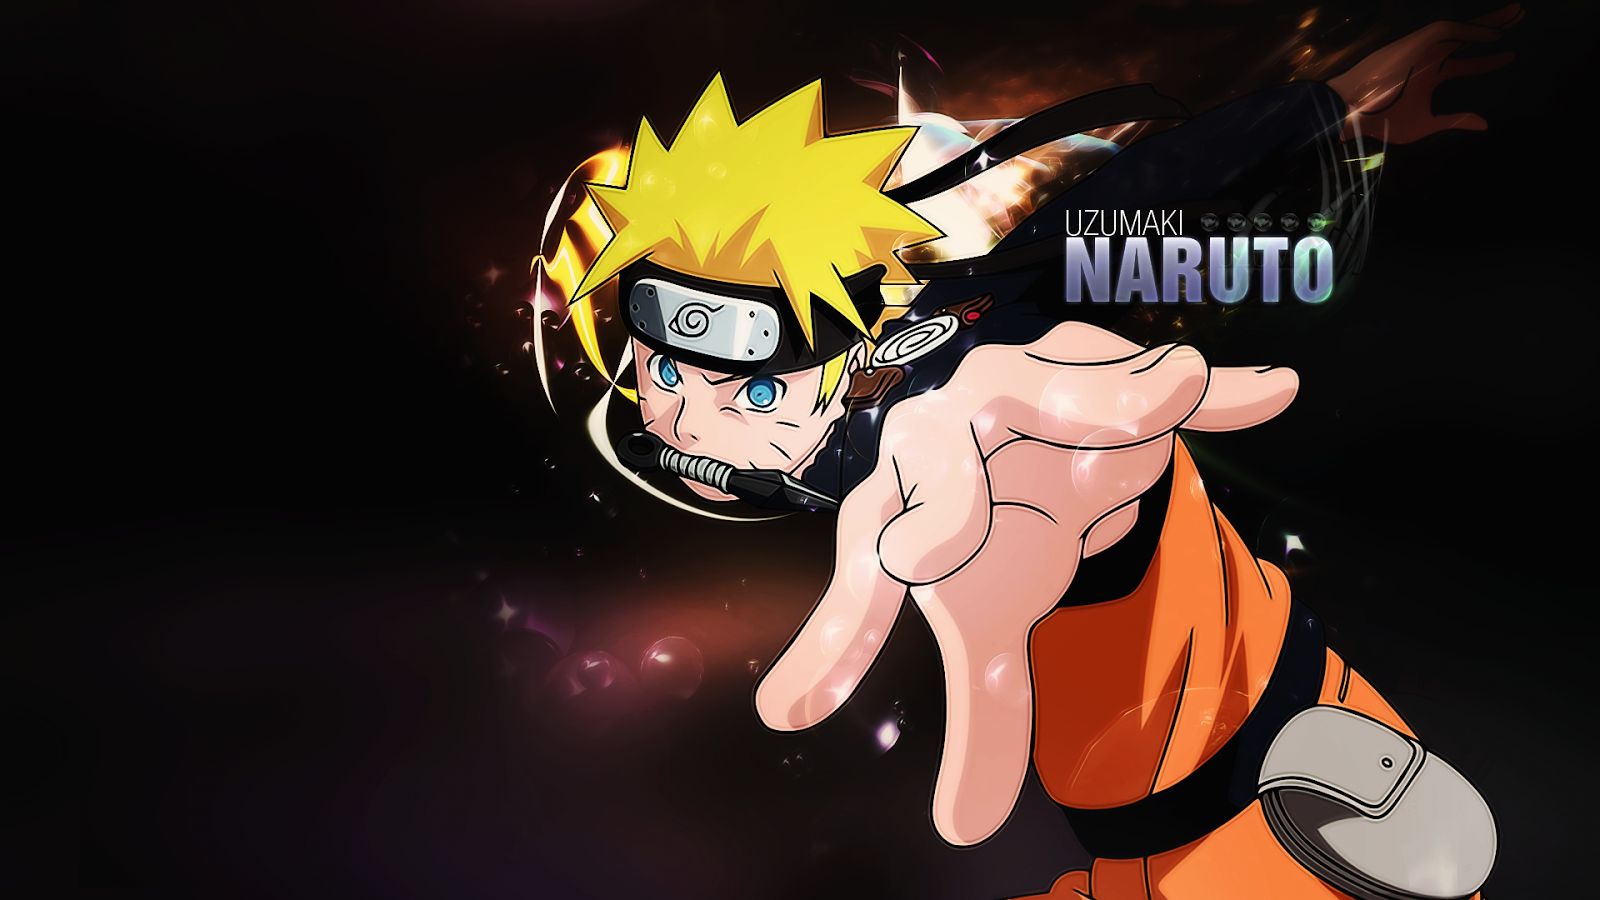 Anime Wallpaper Hd Naruto